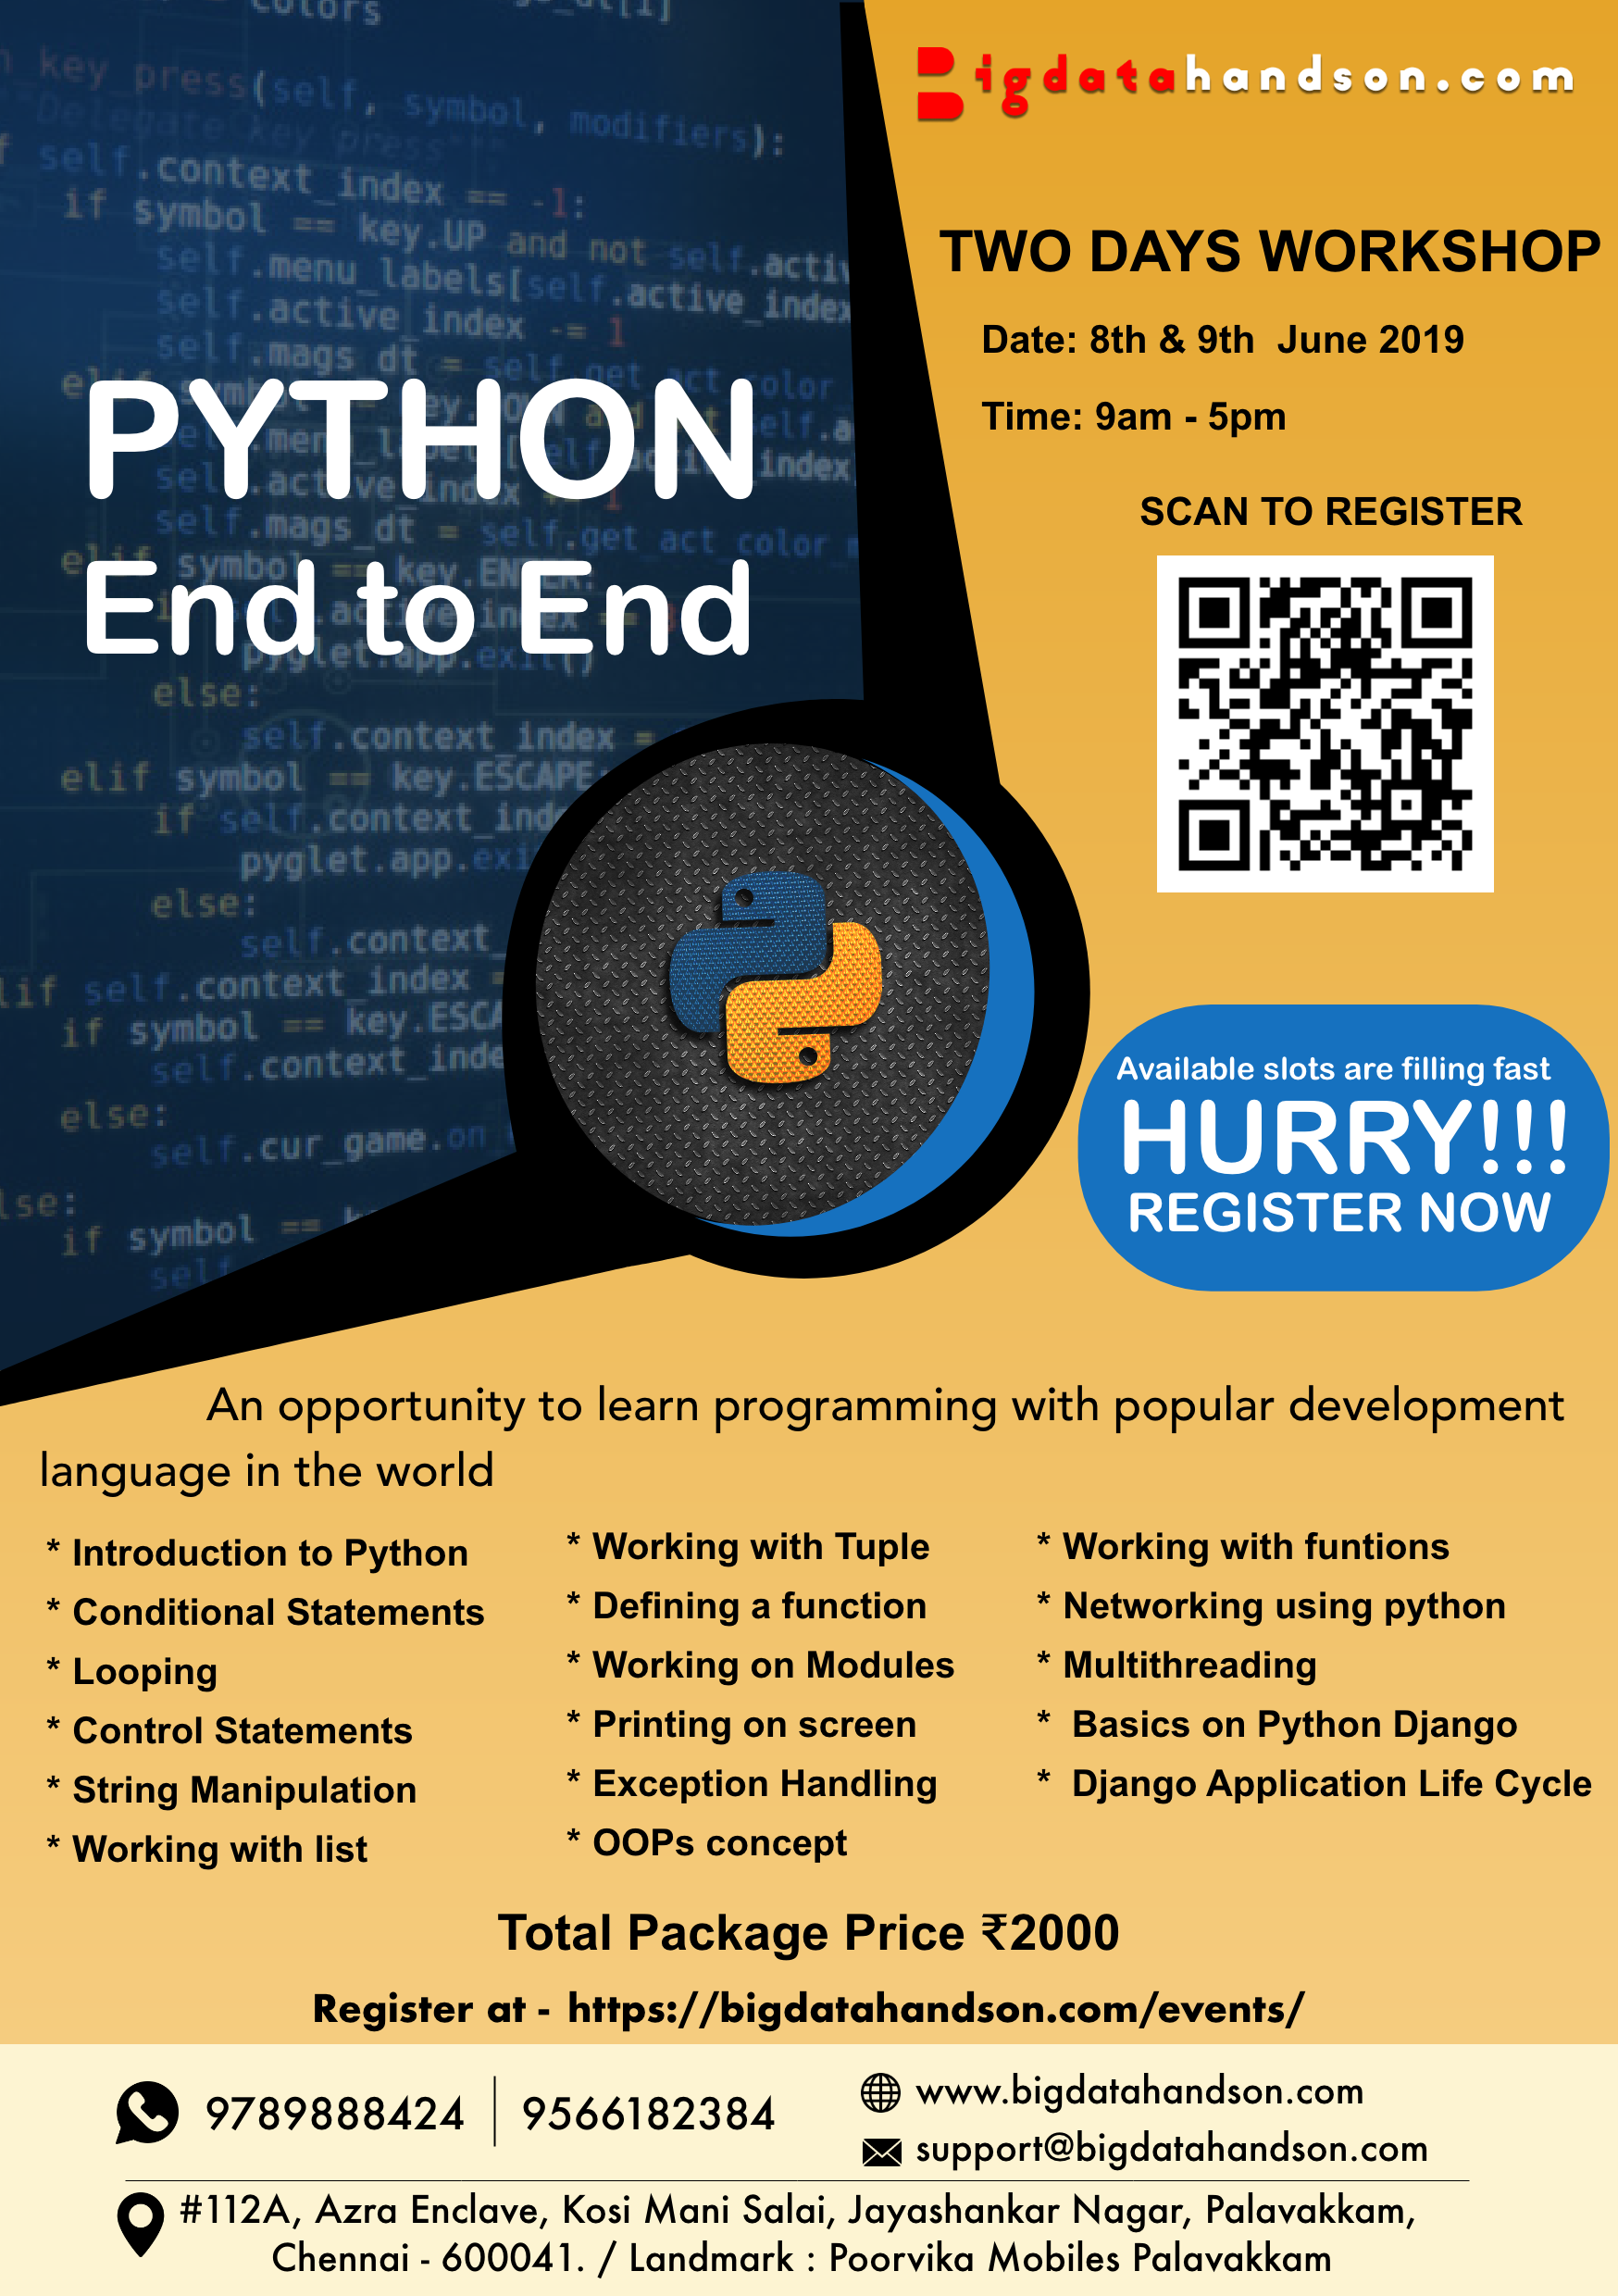 Two days Workshop on Python End to End in chennai @ bigdatahandson com on  8th and 9th June 2019